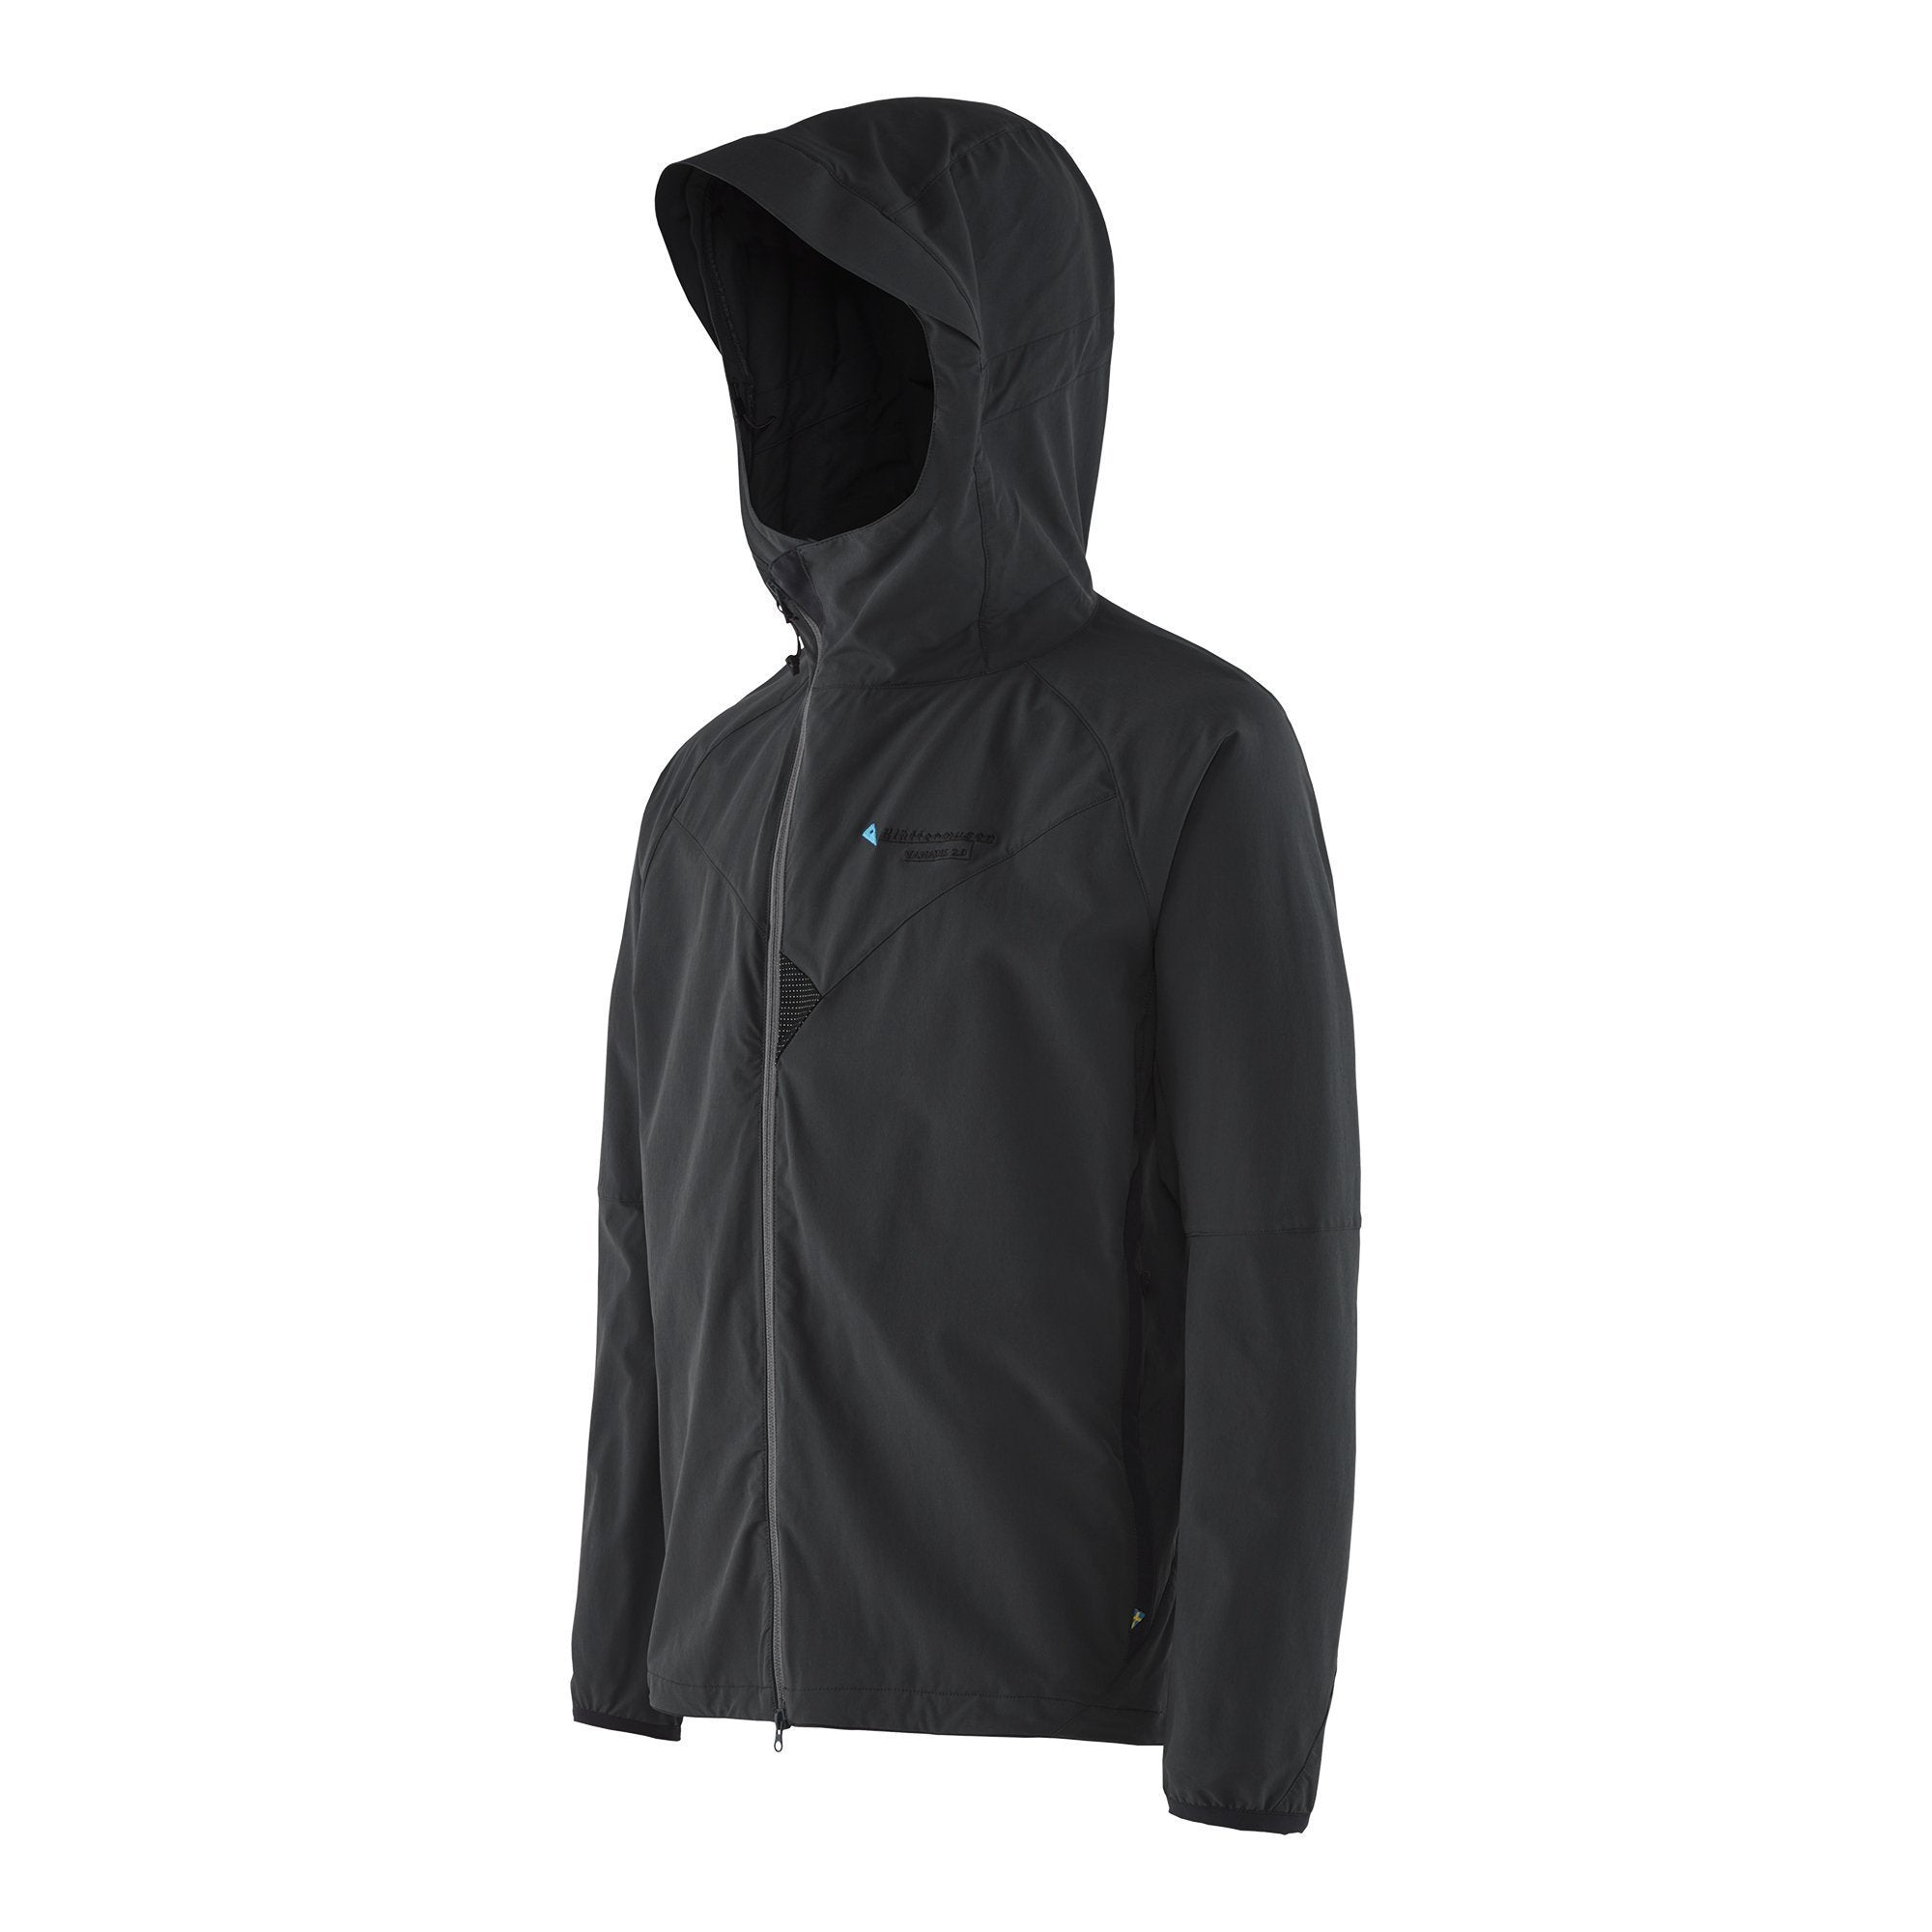 Klättermusen - Men's Vanadis 2.0 Jacket - Windproof Water Repellent Softshell Made From Recycled Polyamide - Weekendbee - sustainable sportswear